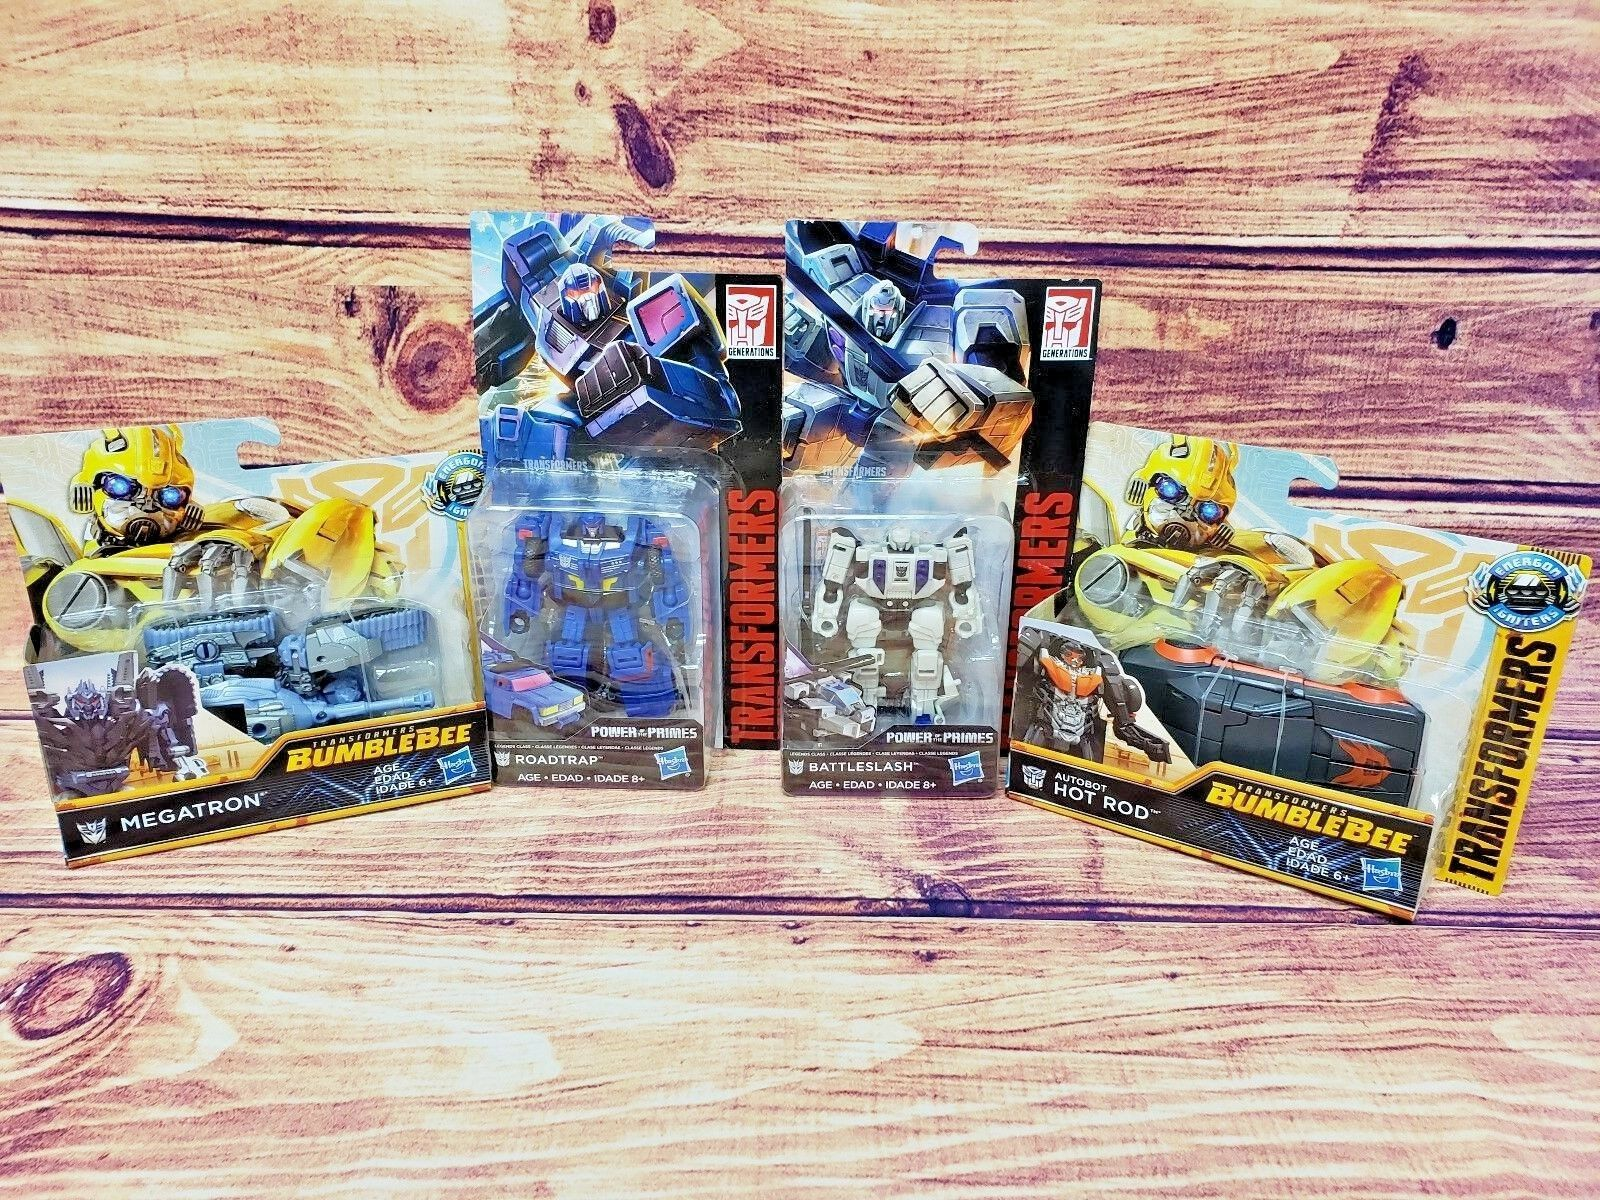 Transformers lot of 4 hot rod, battleslash, roadtrap, megatron, action figures